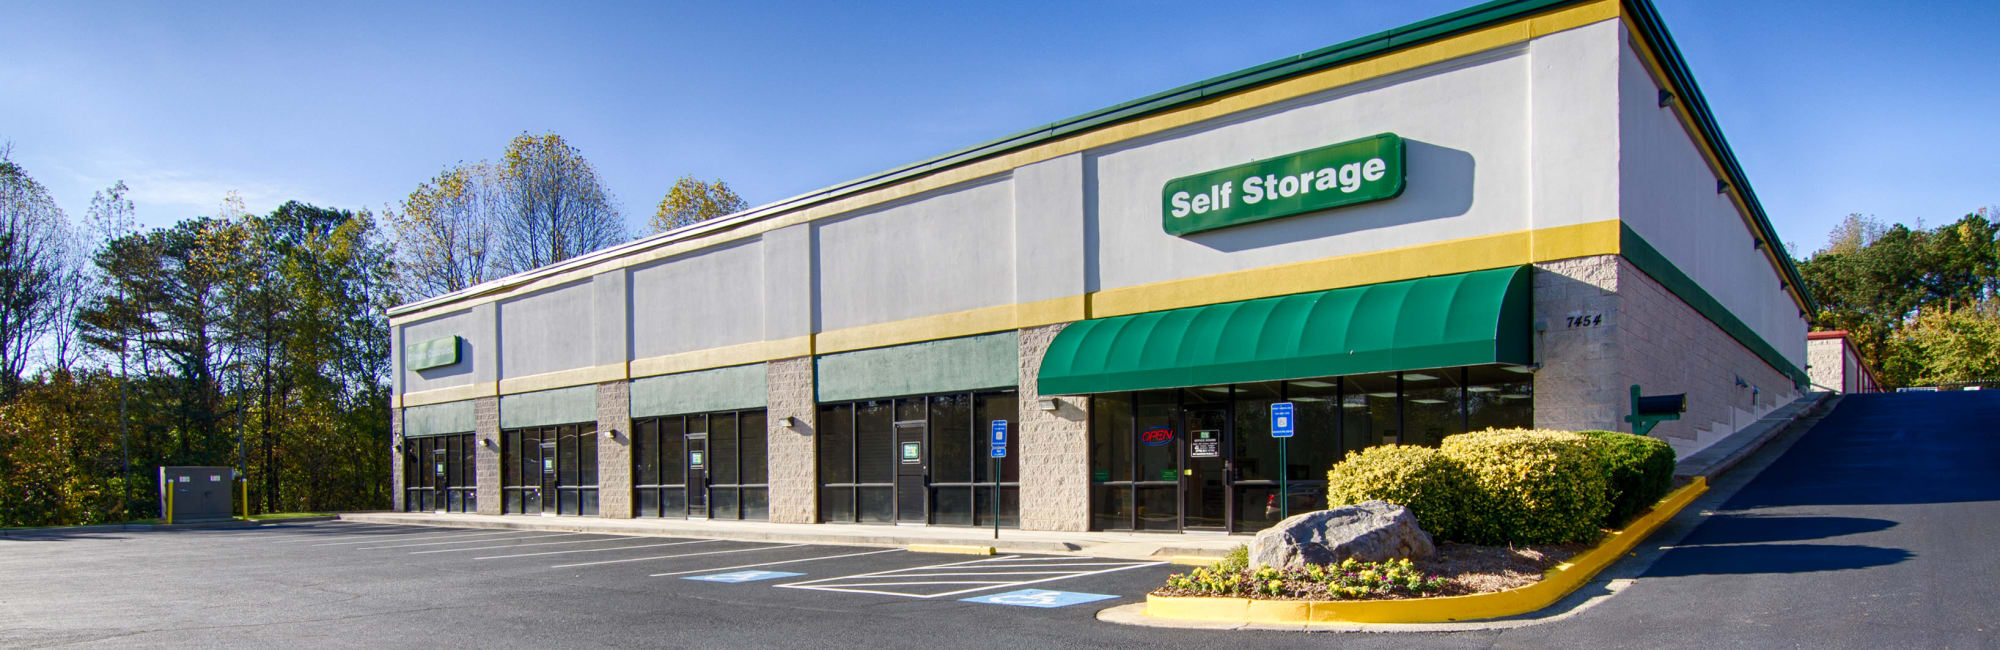 Gentil Metro Self Storage In Douglasville, GA